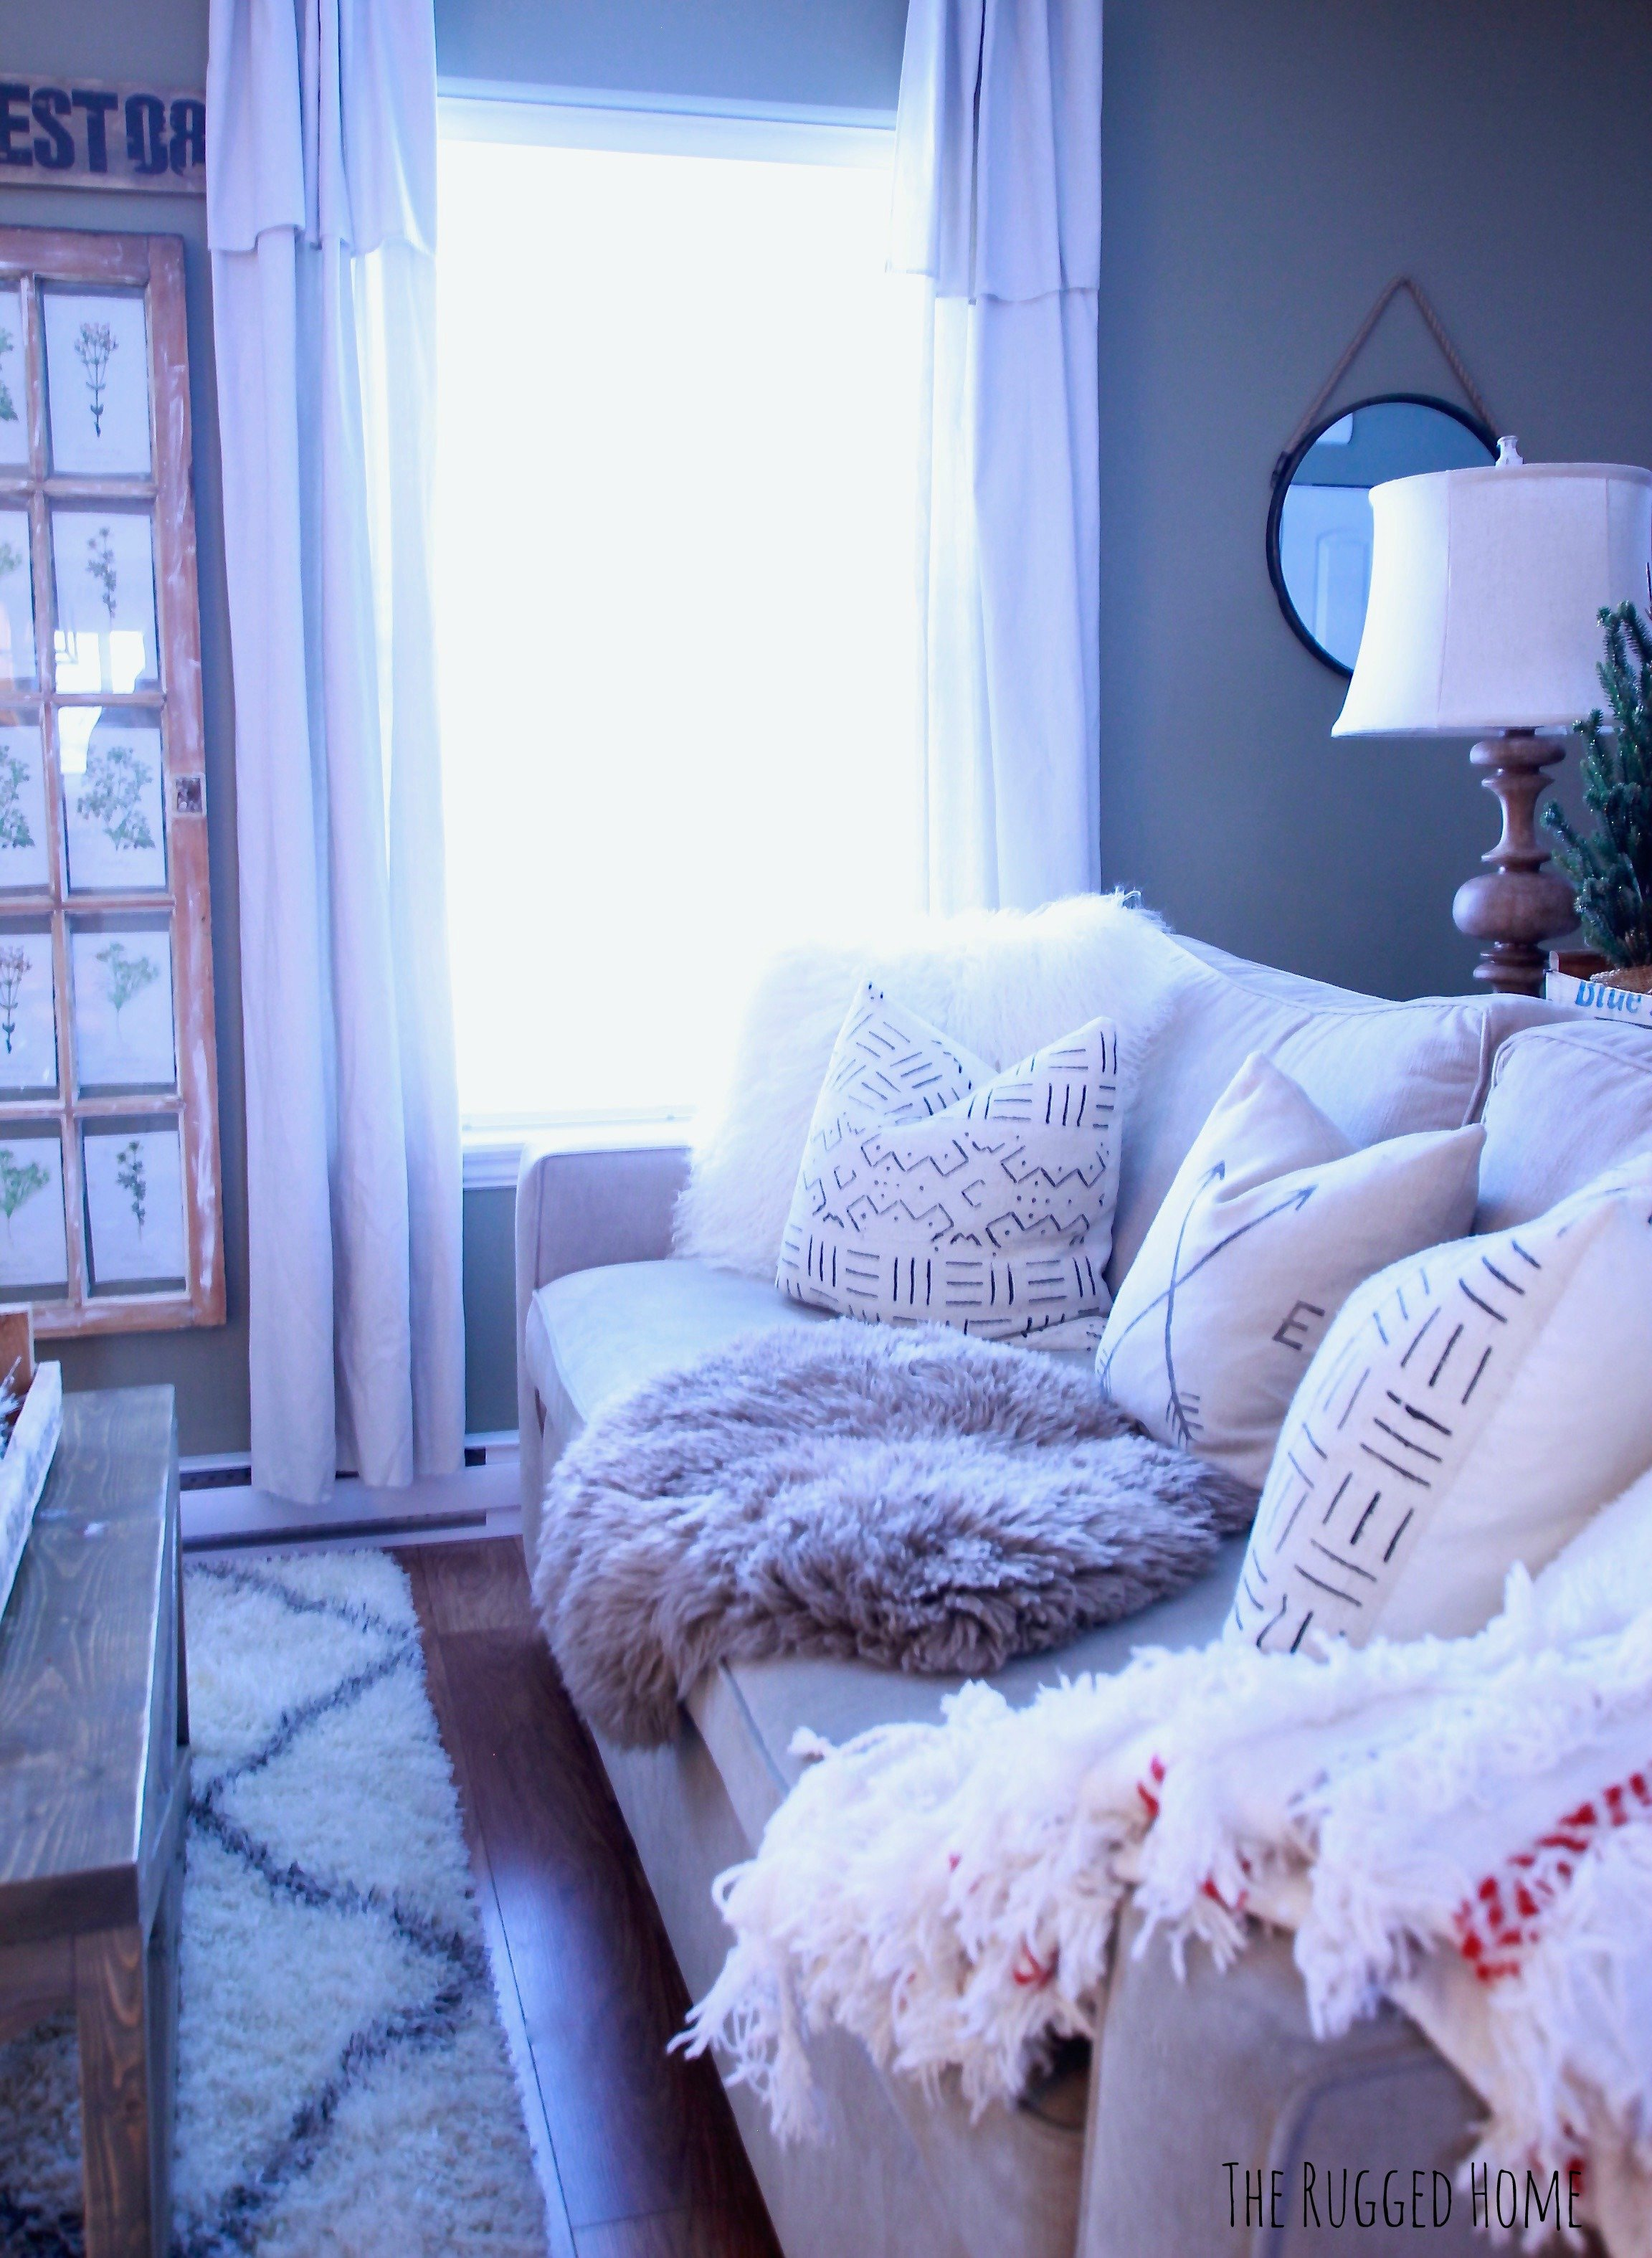 """DIY The Easiest Farmhouse Drop Sheet Curtains Ever, Step By Step, Where To Buy Everything, How TO Make Them Look Good, Under 50 Bucks For 4 Panels at 108"""" Length! www.whitepicketfarmhouse.com"""